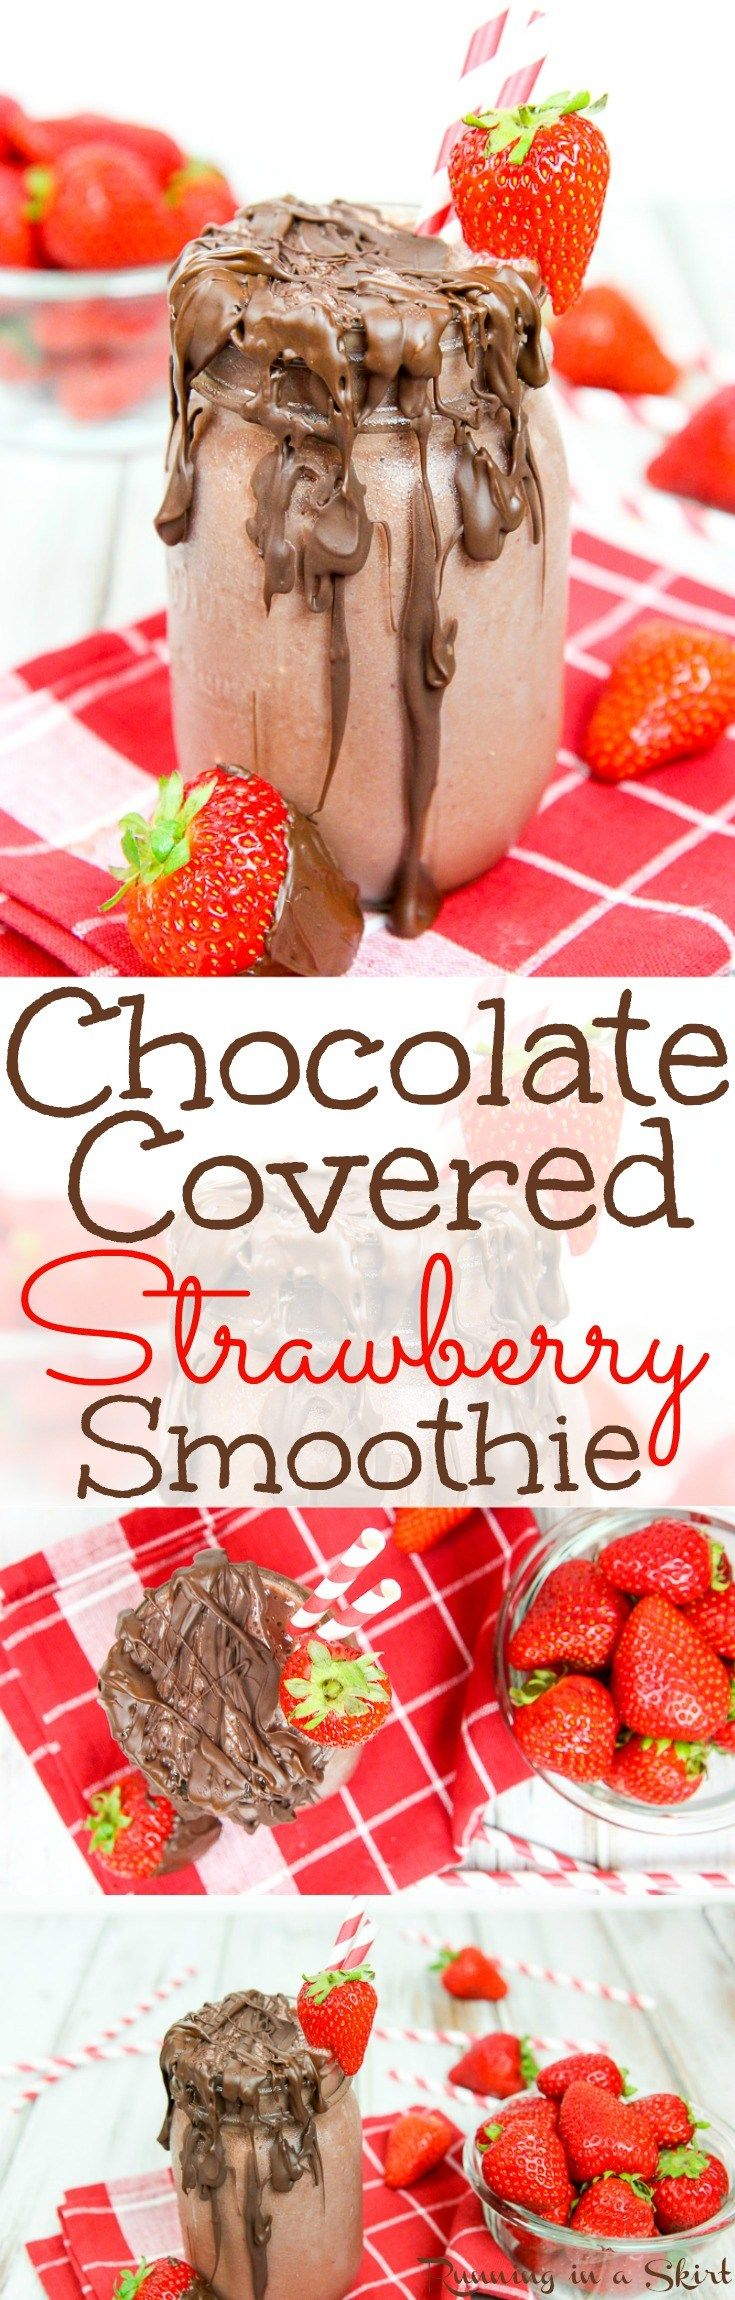 Chocolate Covered Strawberry Smoothie recipe / Running in a Skirt #chocolatestrawberrysmoothie